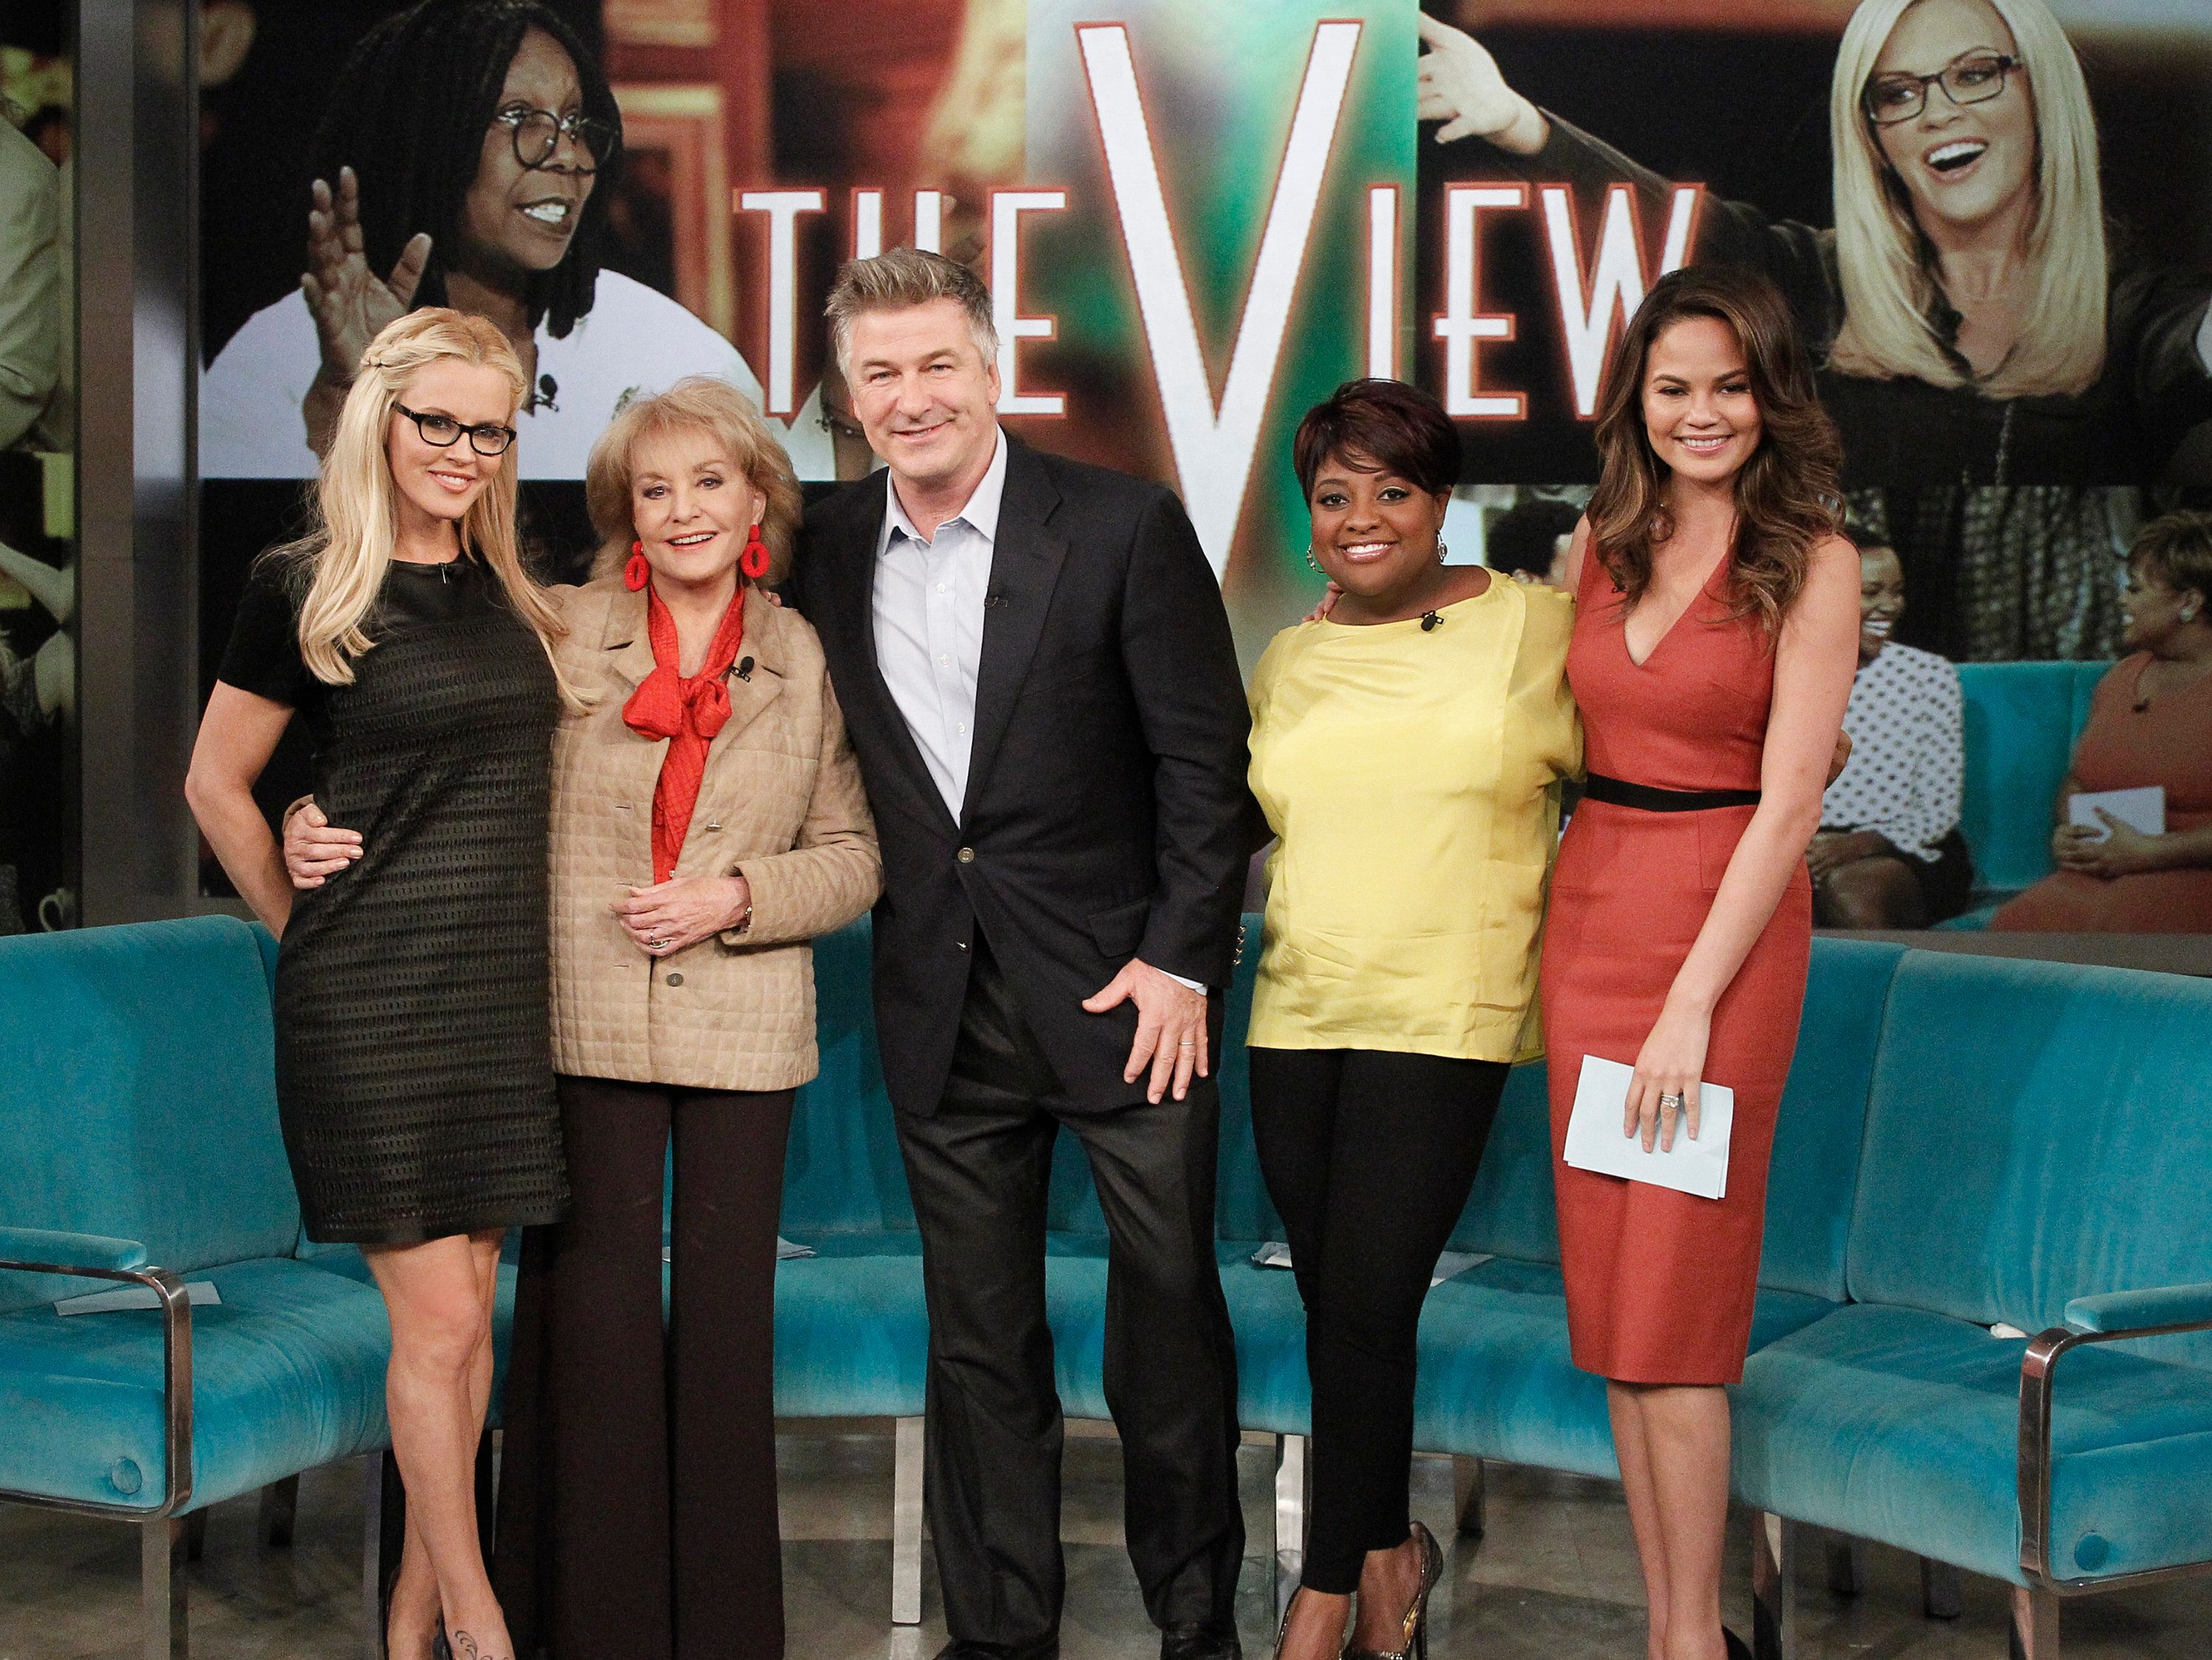 THE VIEW - (airs 10.25.13) Chrissy Teigen is the guest co-host; Guests includeActor Alec Baldwin; Dr. Gadget and in 'Sherri's Comedy Club,' comedian, Anjelah Johnson.  'The View' airs Monday-Friday (11:00 am-12:00 pm, ET) on the ABC Television Network.     (Photo by Lou Rocco/ABC via Getty Images) JENNY MCCARTHY, BARBARA WALTERS, ALEC BALDWIN, SHERRI SHEPHERD, CHRISSY TEIGEN